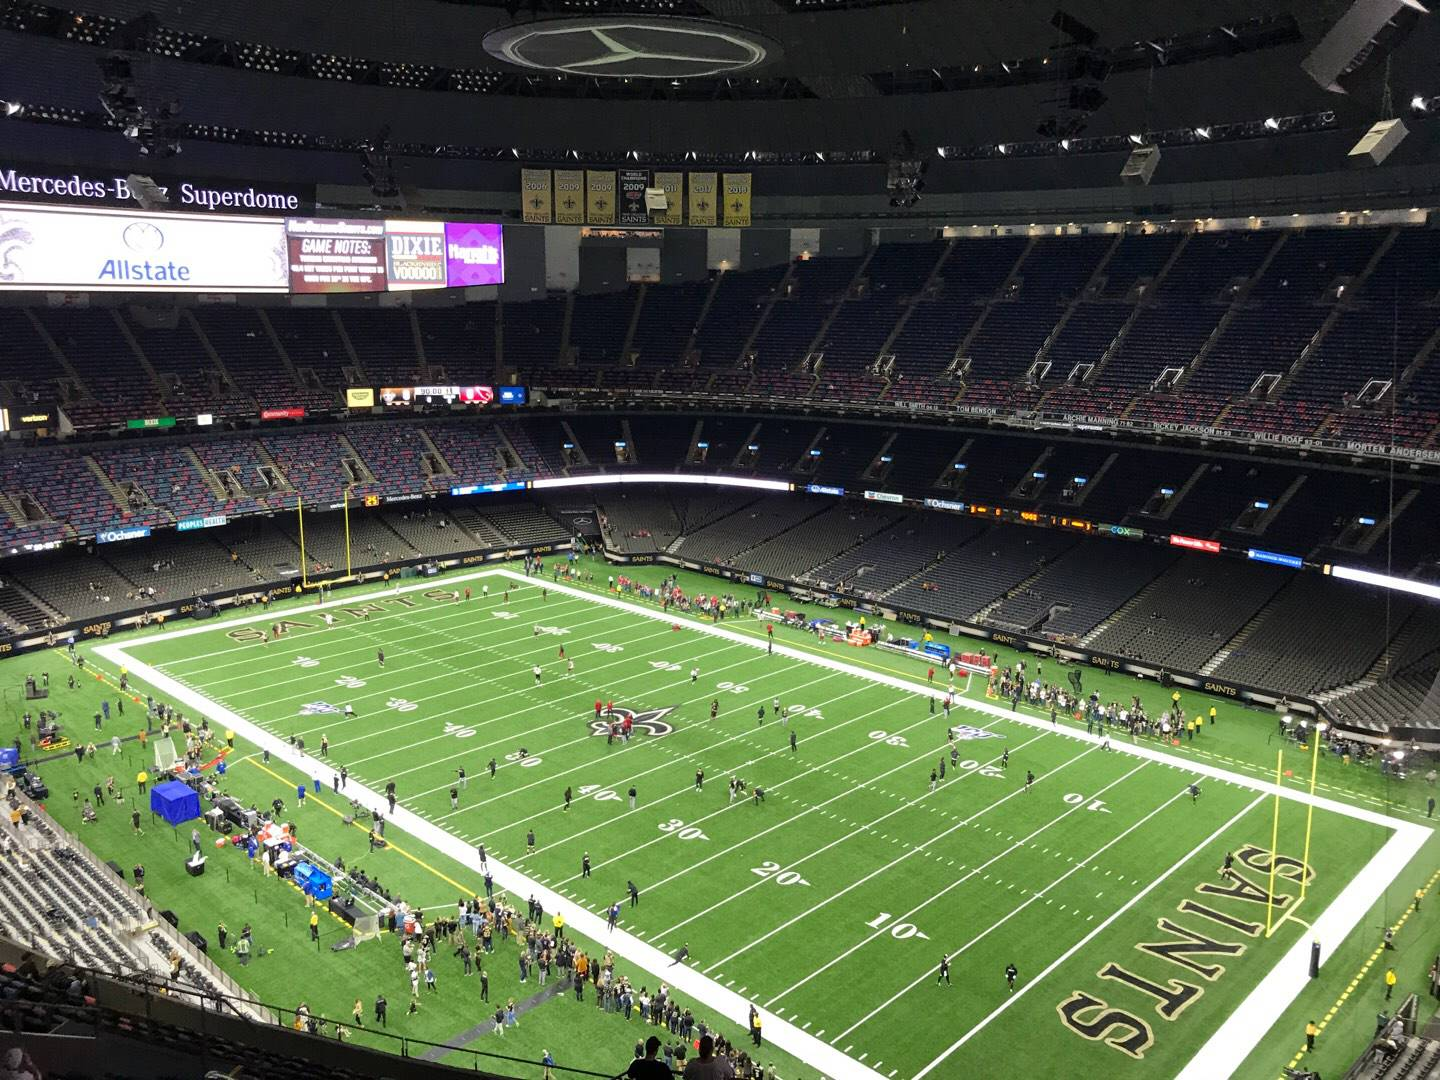 Mercedes-Benz Superdome Section 633 Row 25 Seat 23